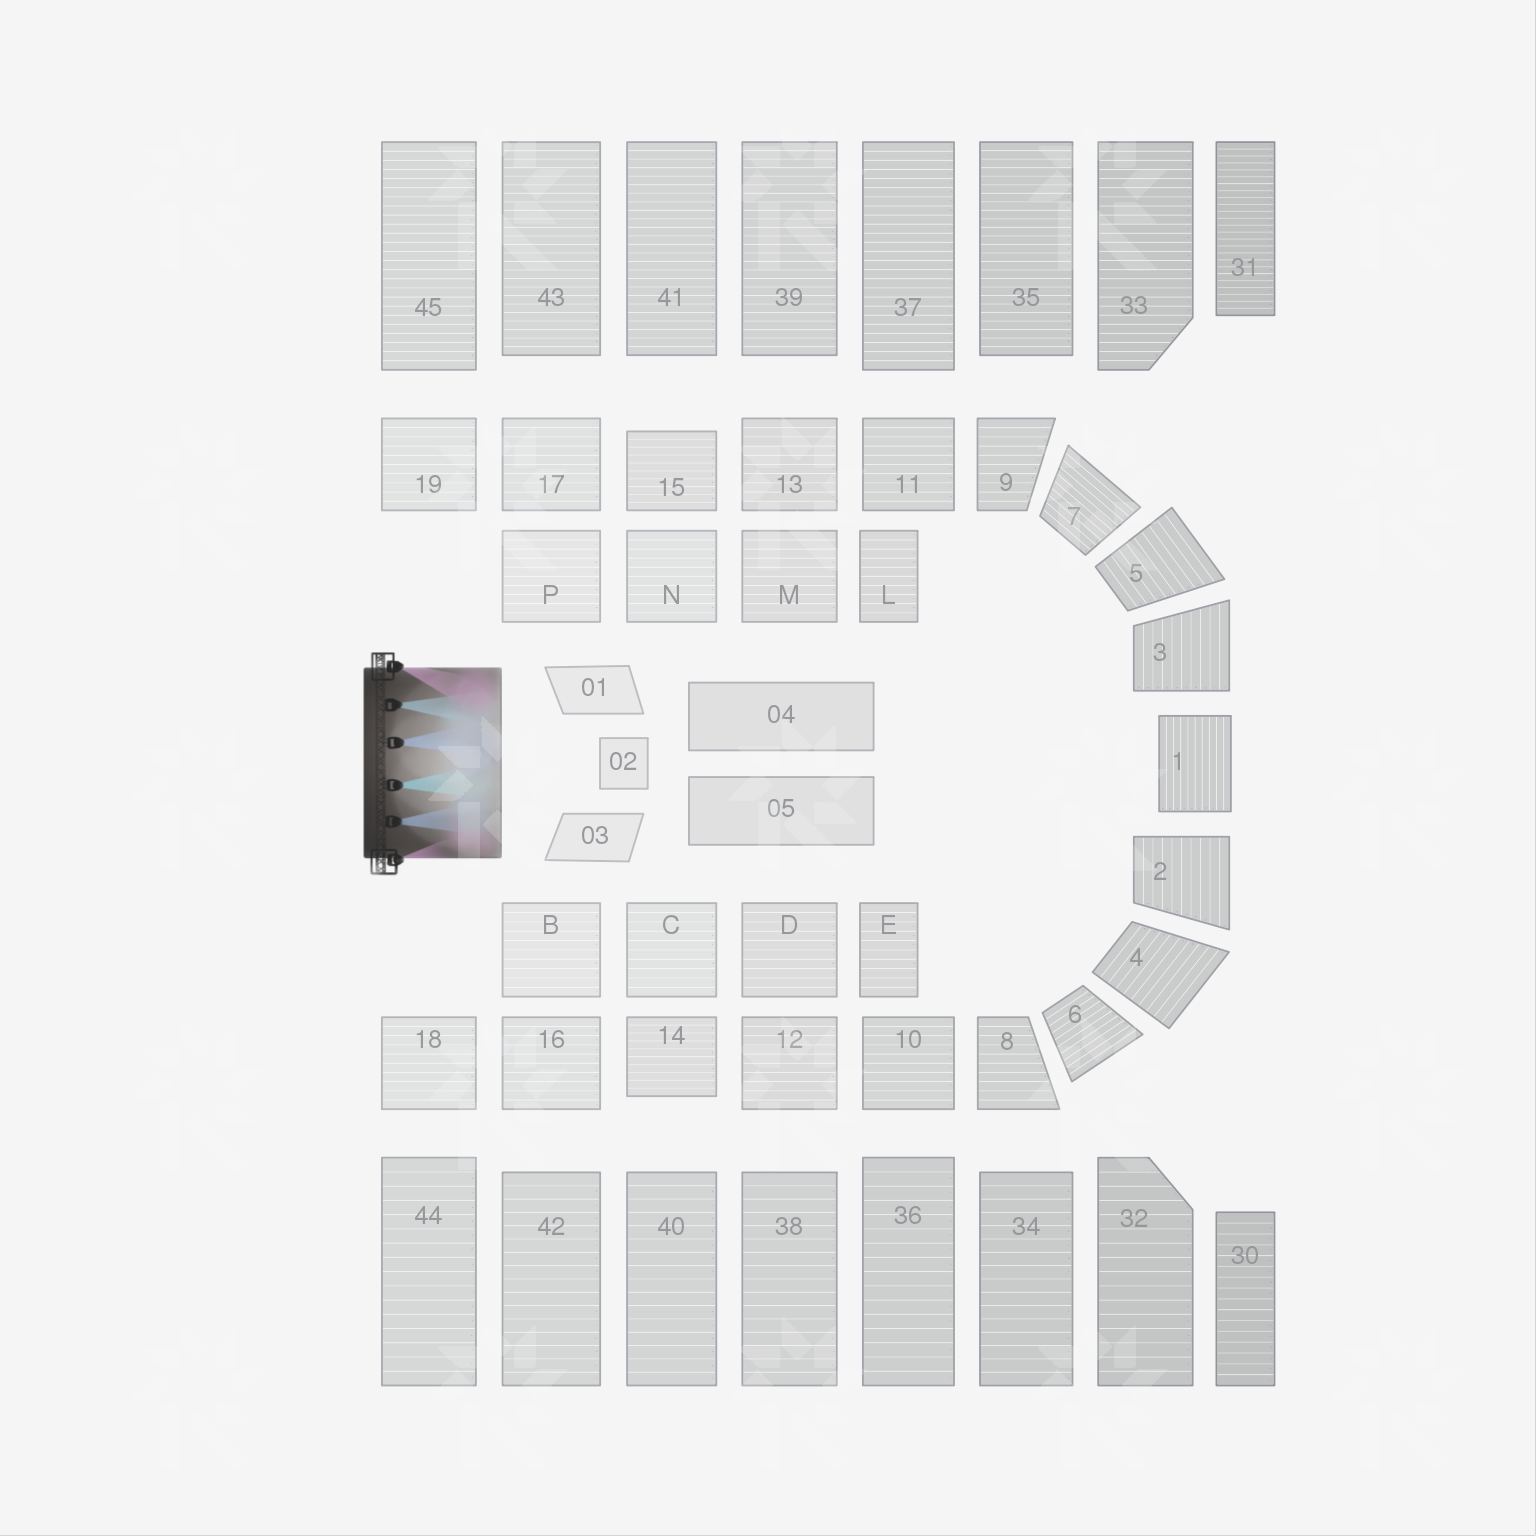 hight resolution of metrapark rimrock auto arena seating chart concerts carrie underwood concerts